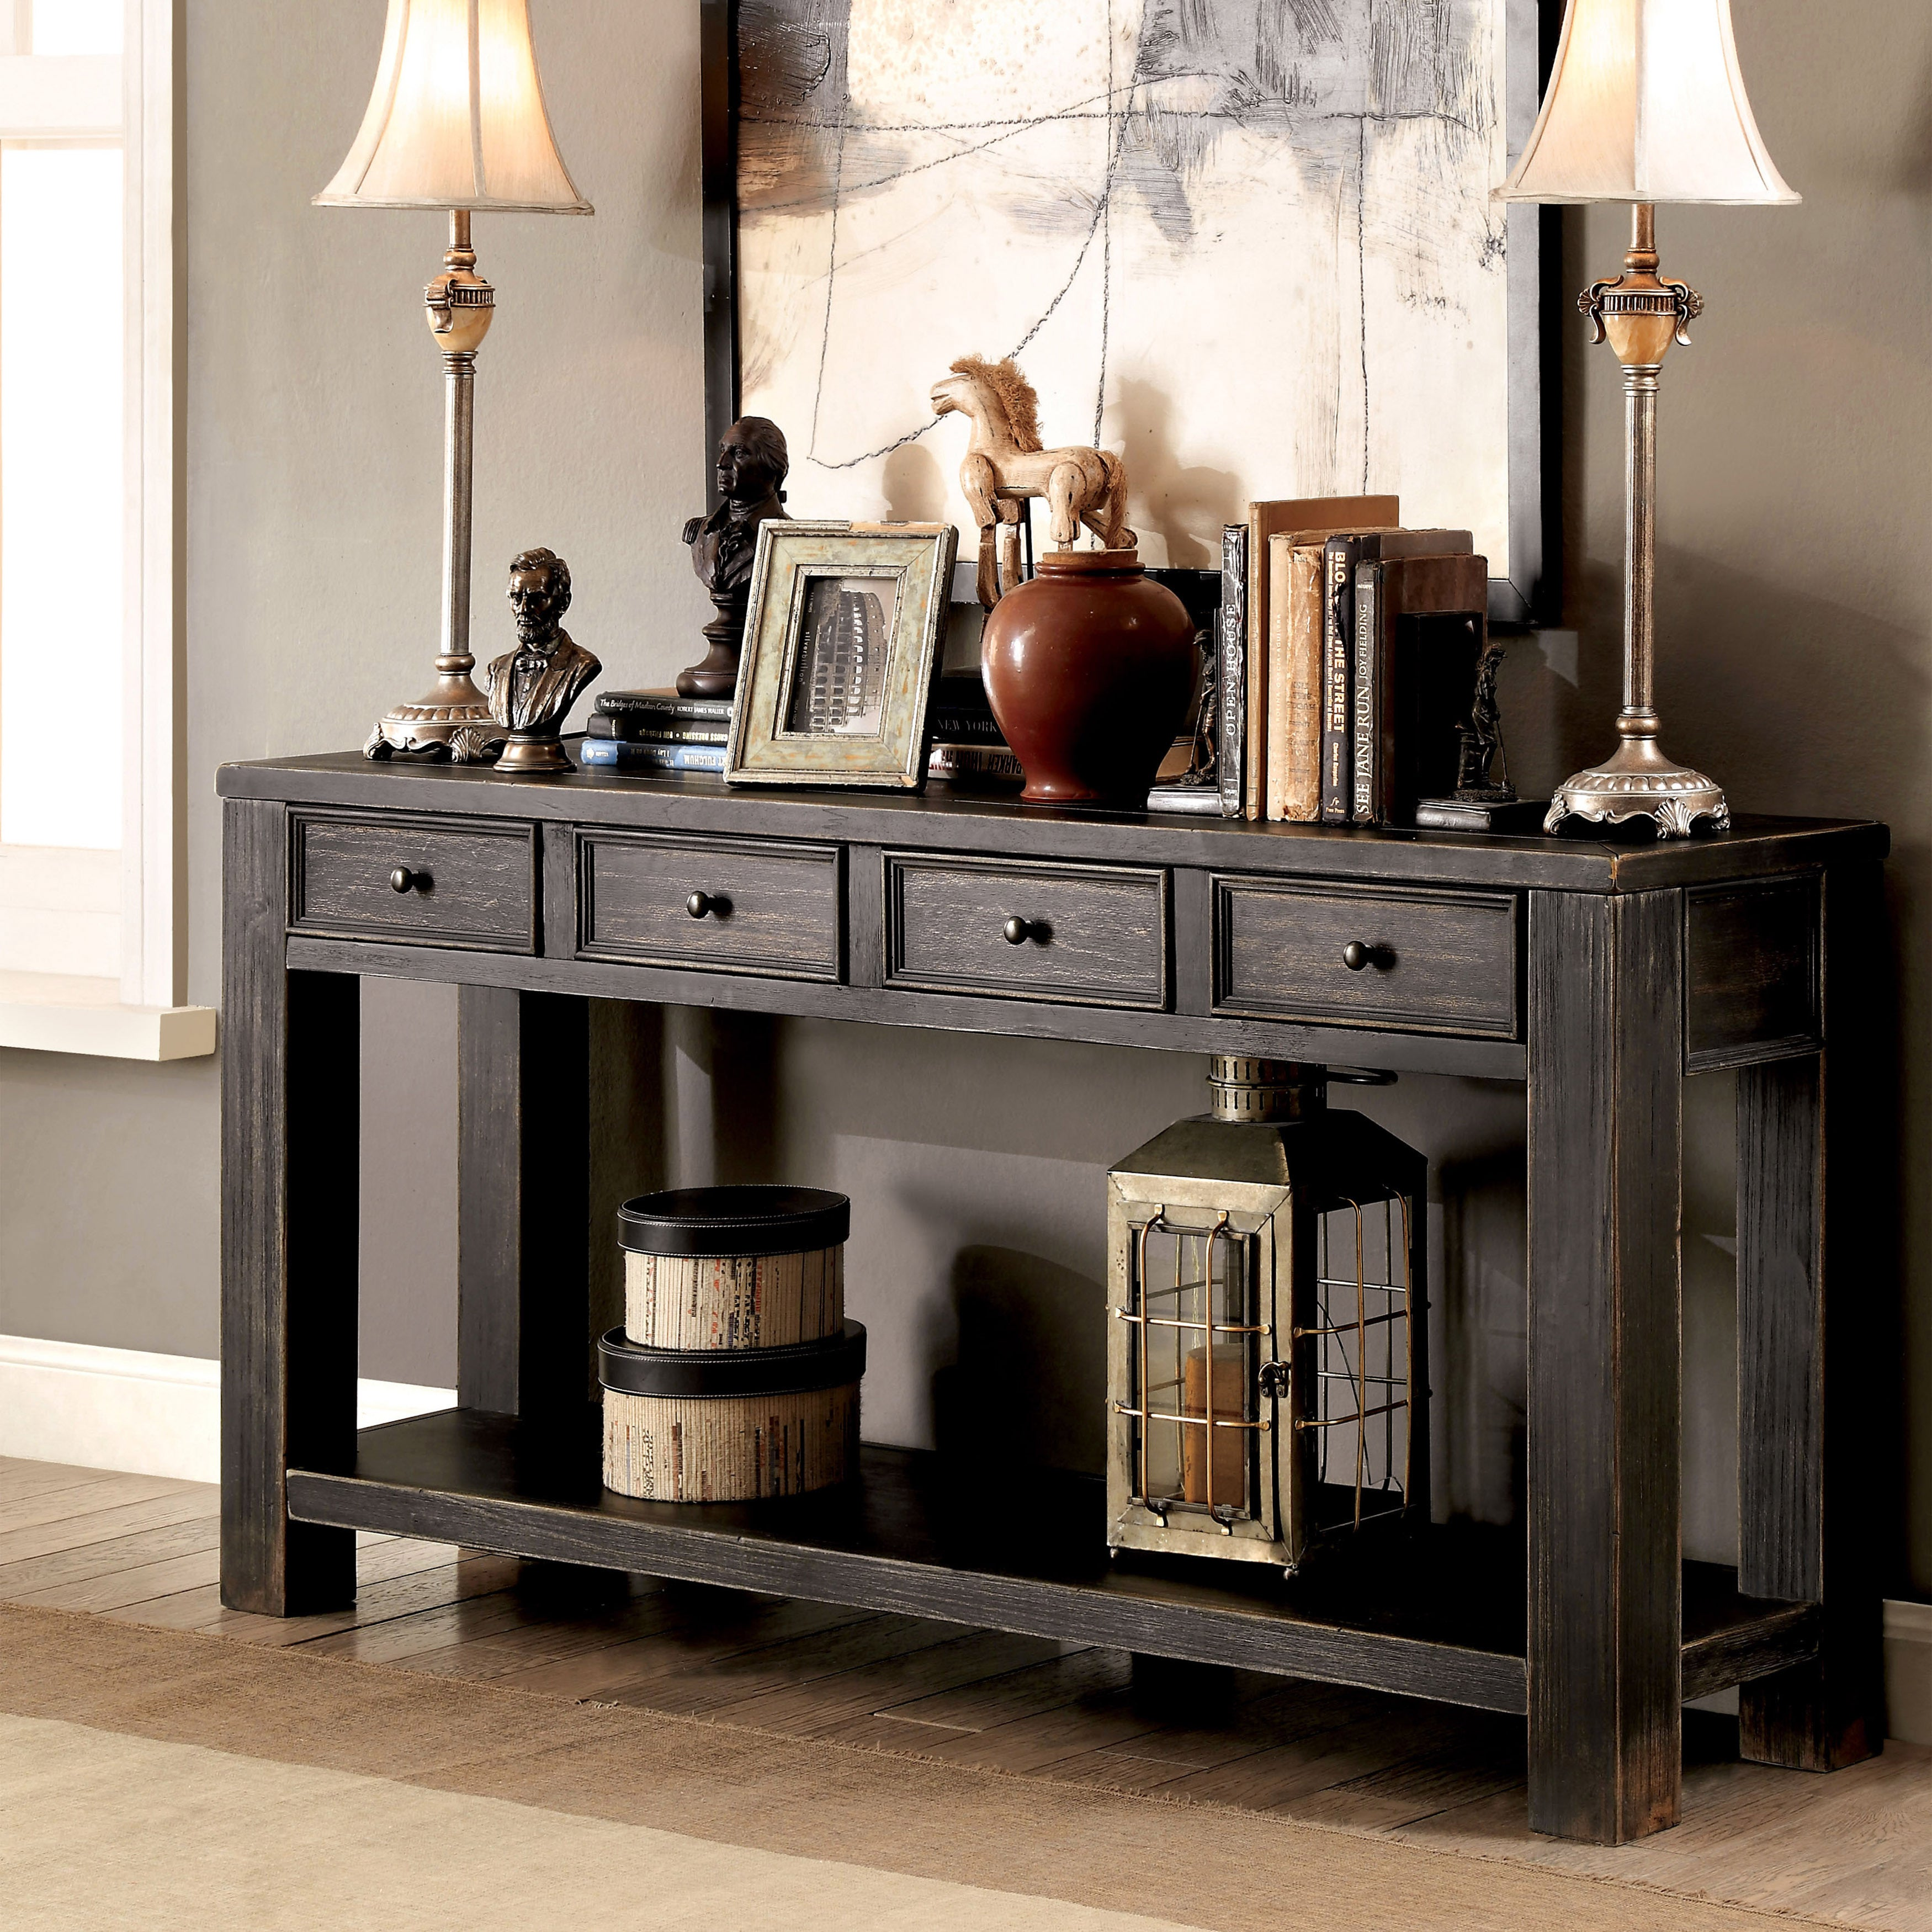 Buy Sofa Tables Online at Overstock | Our Best Living Room Furniture ...